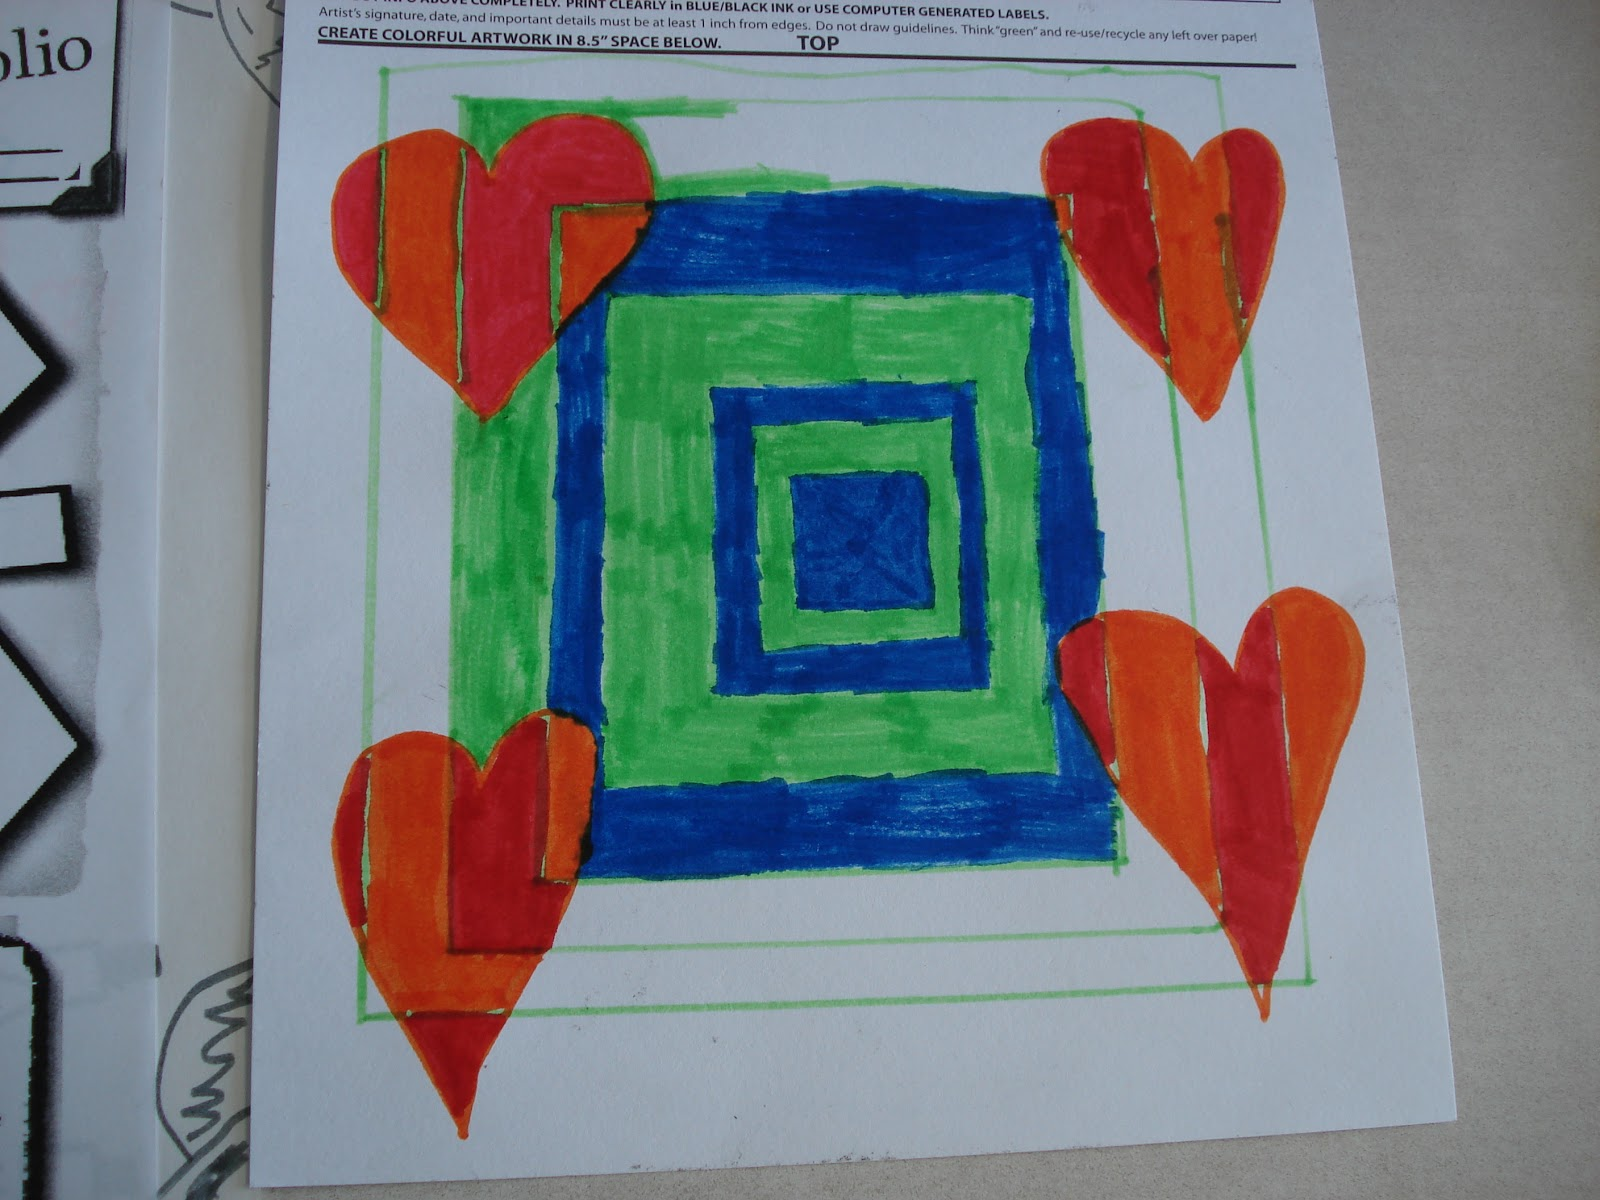 Op art uses color to create - After Discussing Line Shape Pattern And Color Theory Students Got To Work On These Eye Crossing Works Of Art